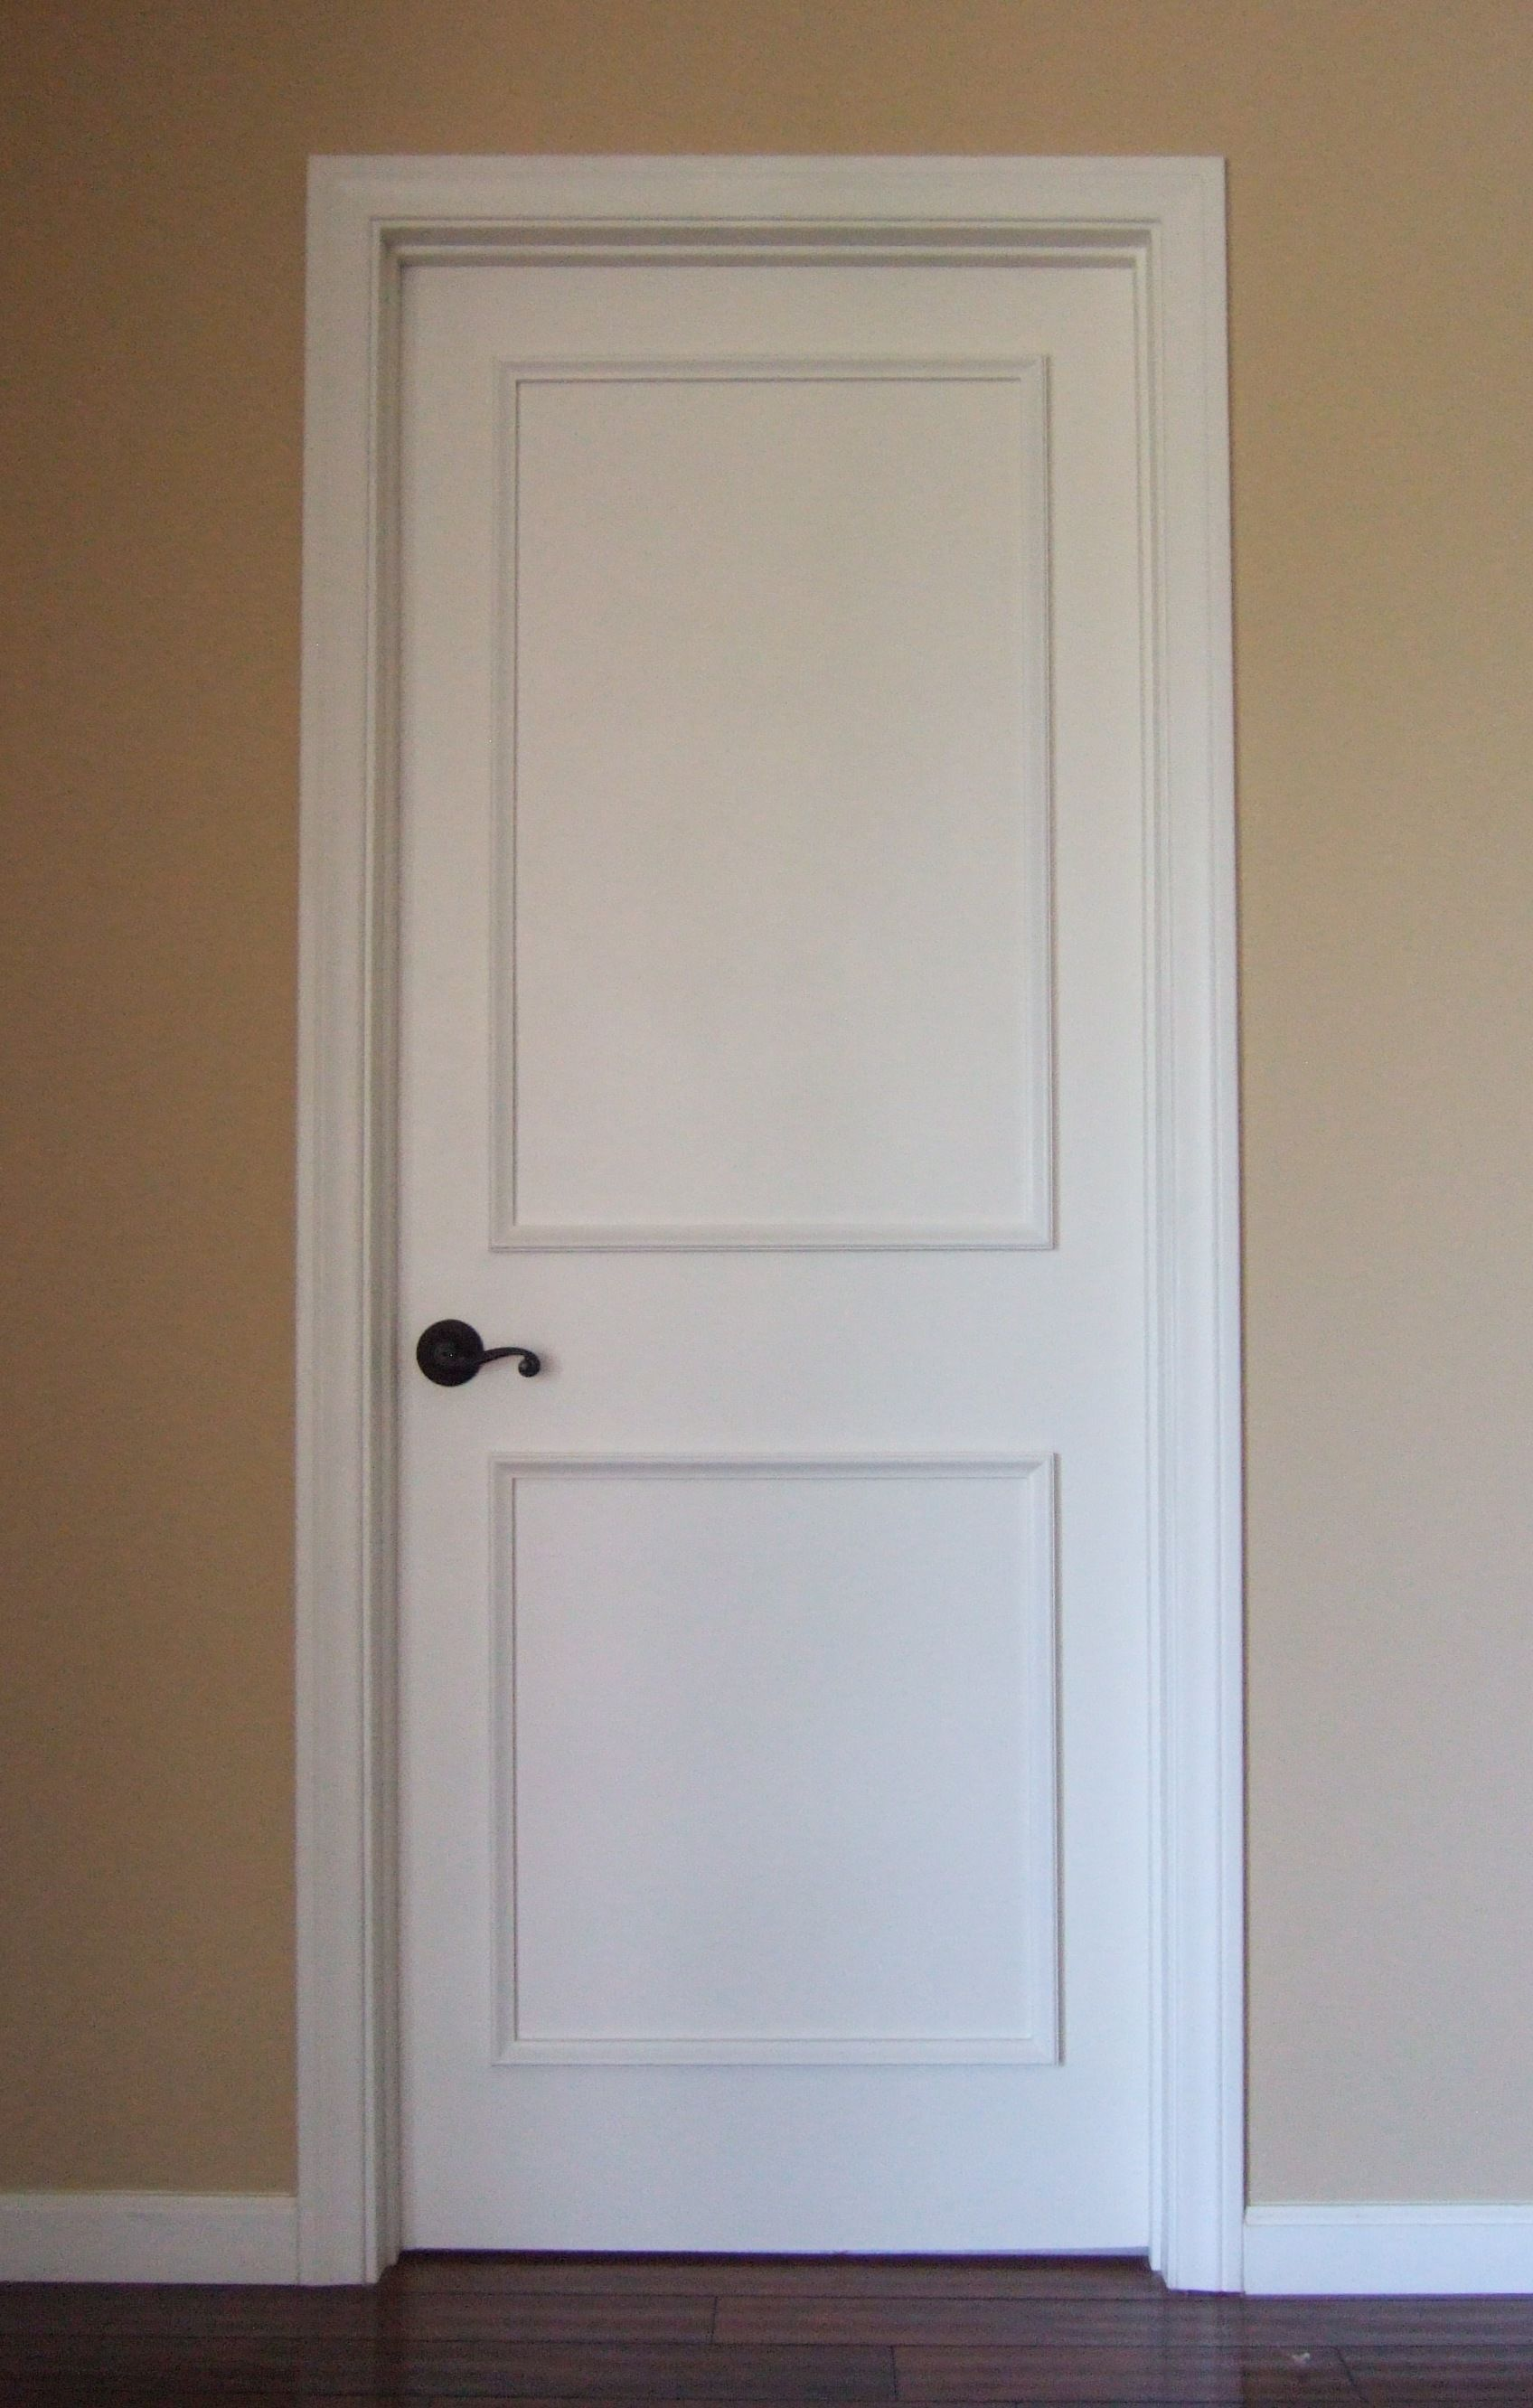 Interior window trim kit - Two Panel Raised Door Moulding Kit Traditional Interior Doors Los Angeles Luxe Architectural